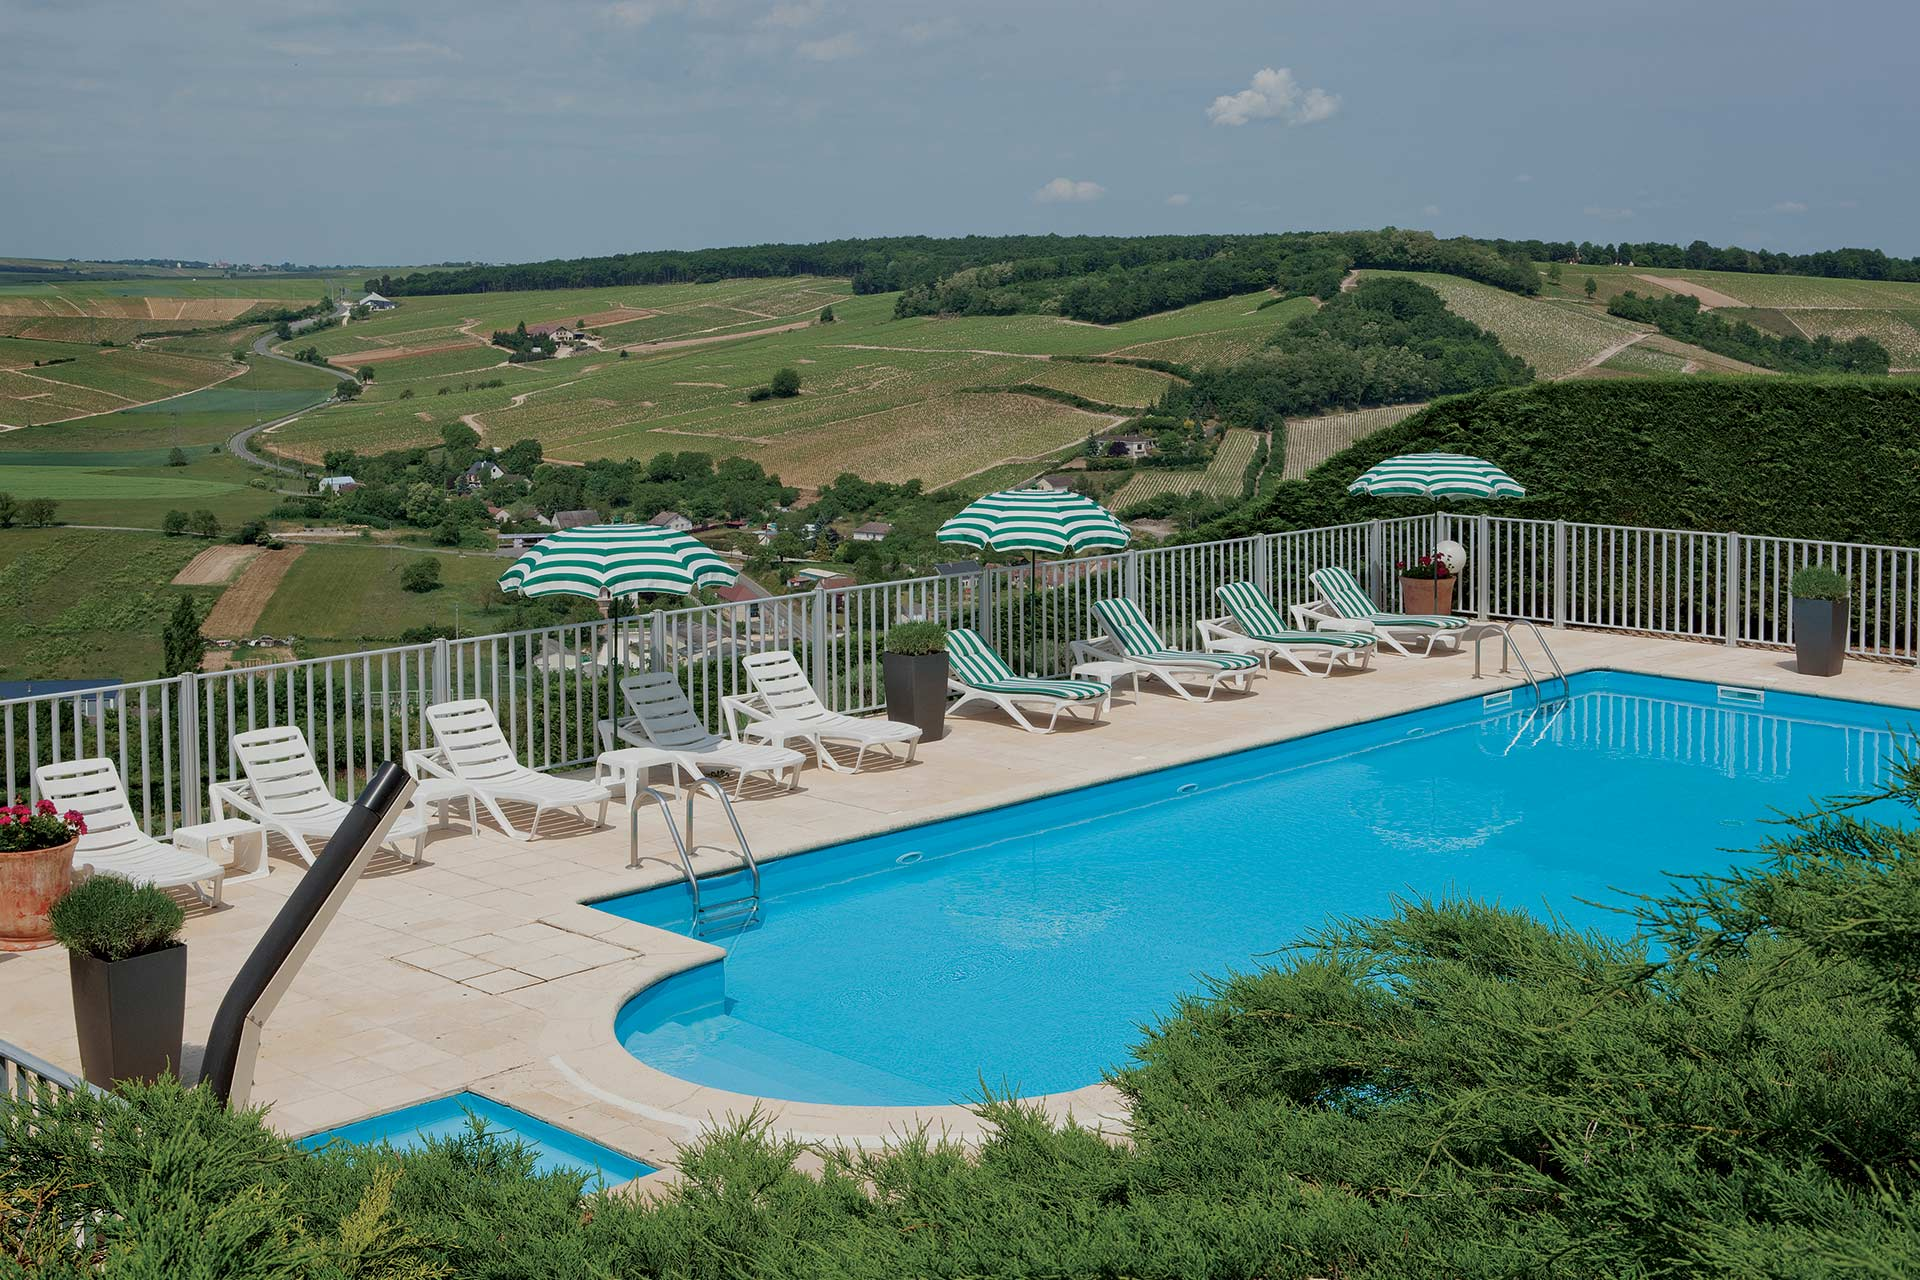 Hotel La Perriere Hotel Sancerre Piscine Paralax Traveling By The Glass